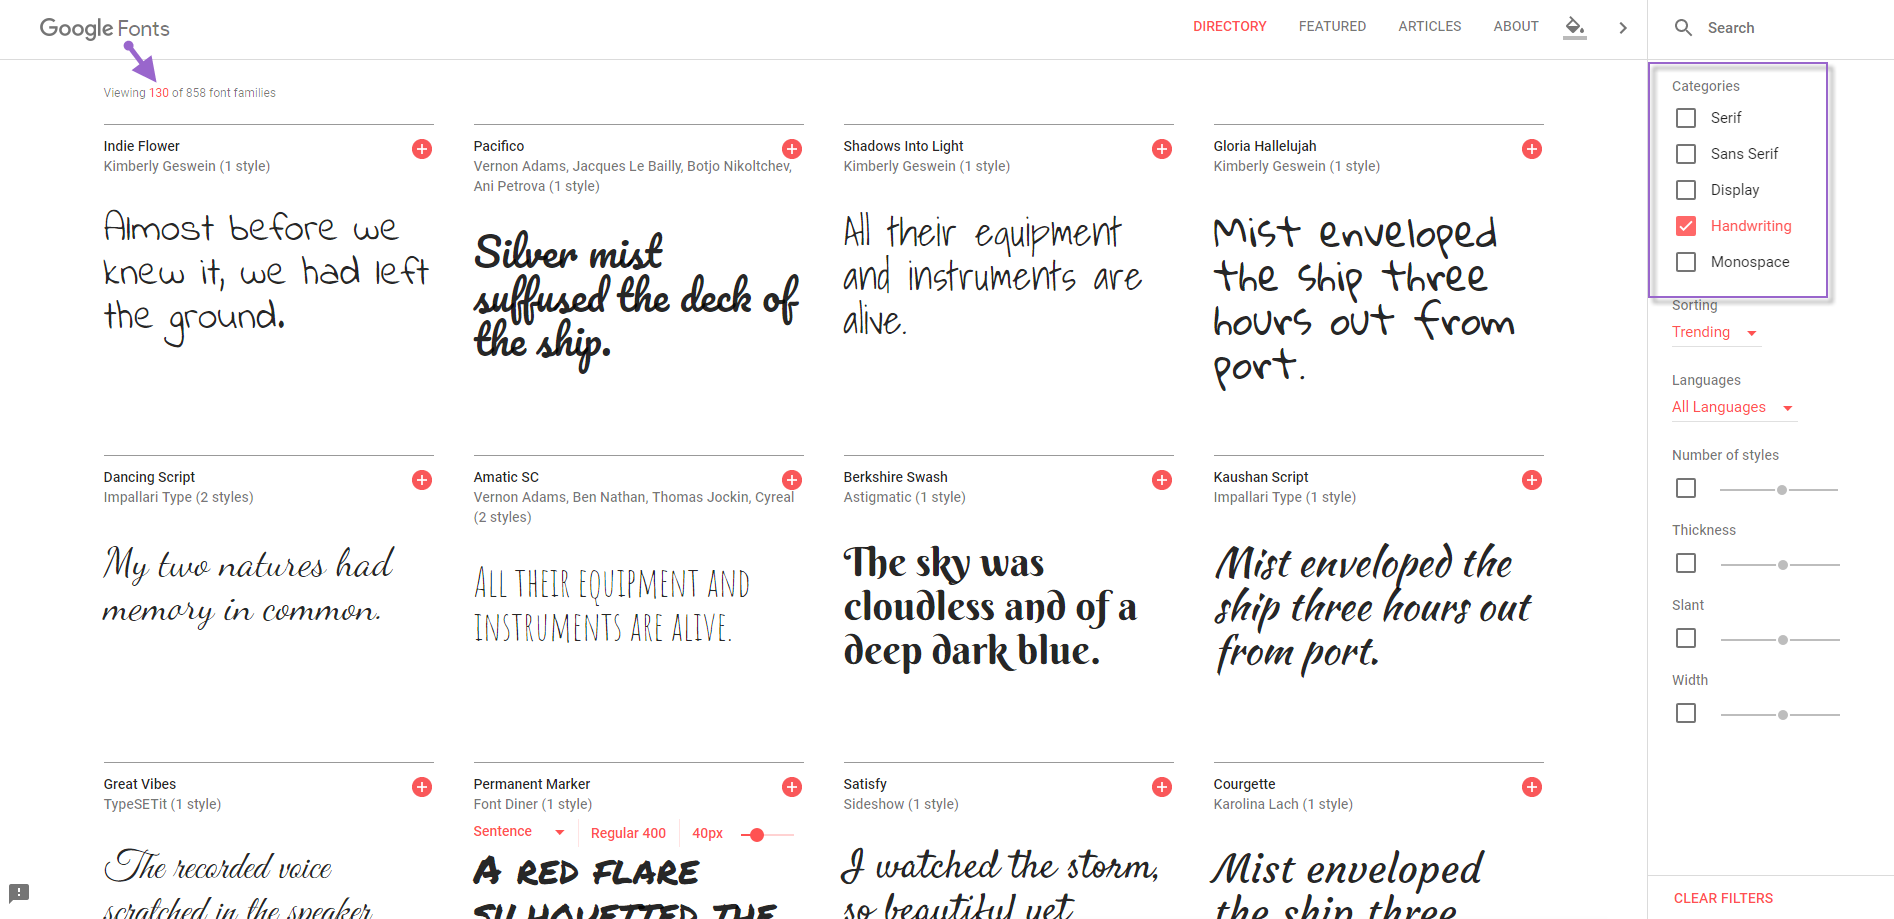 Google fonts page screenshot